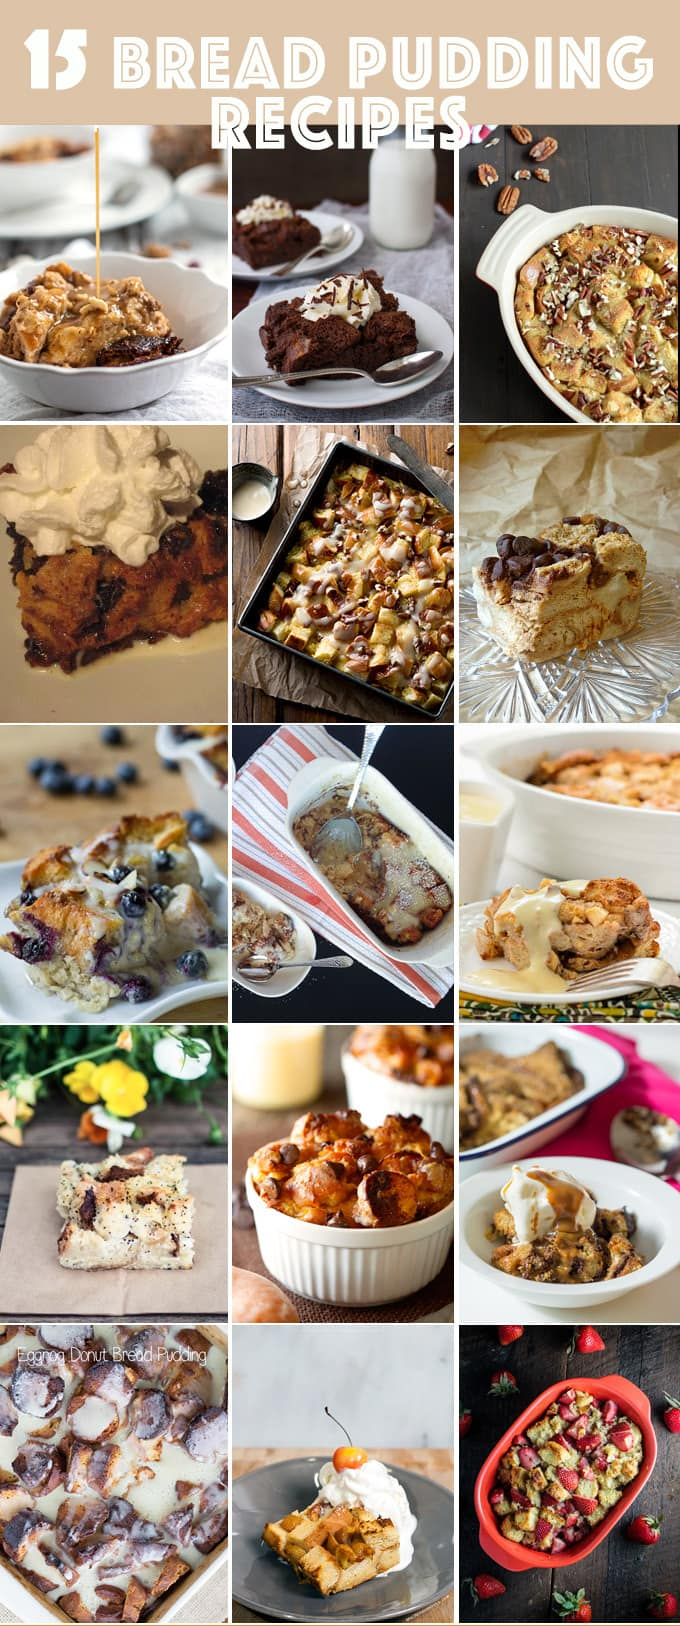 15 Bread Pudding Recipes | www.honeyandbirch.com #dessert